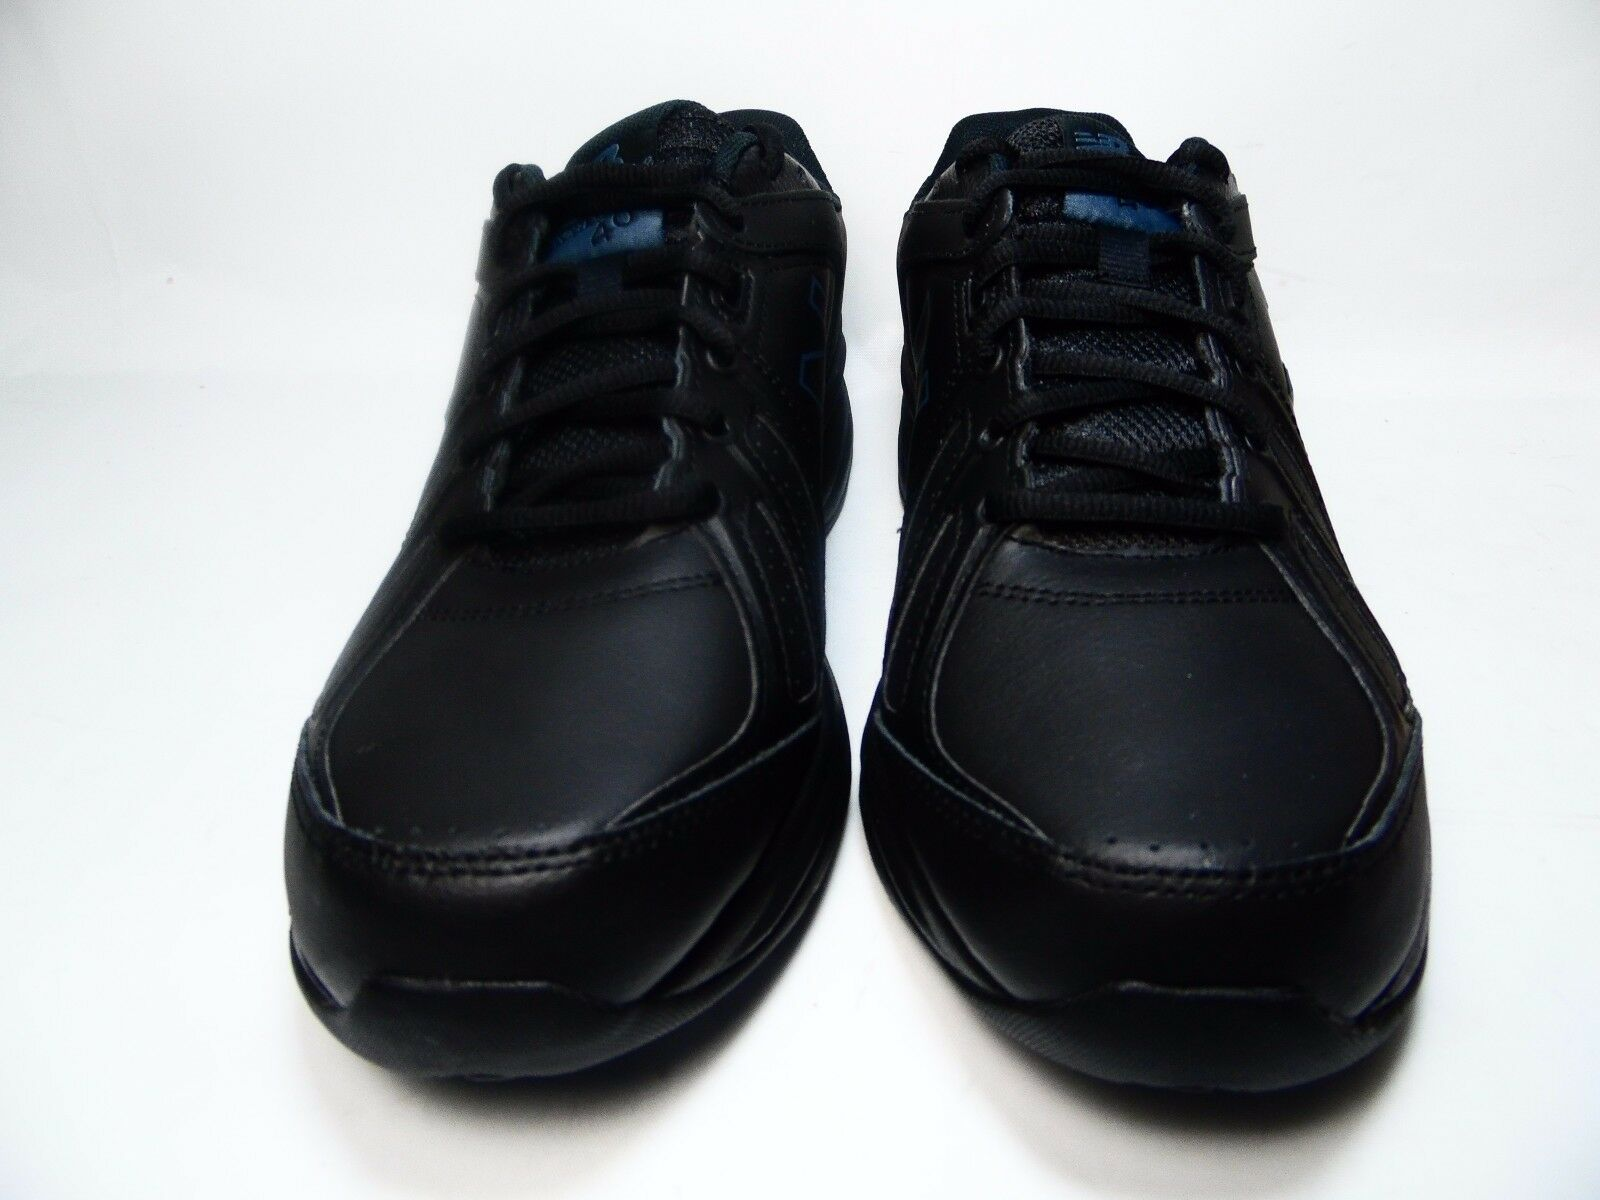 New cross Balance hombres s mx409v3 cross New trainers Negro comodo 2da5c6